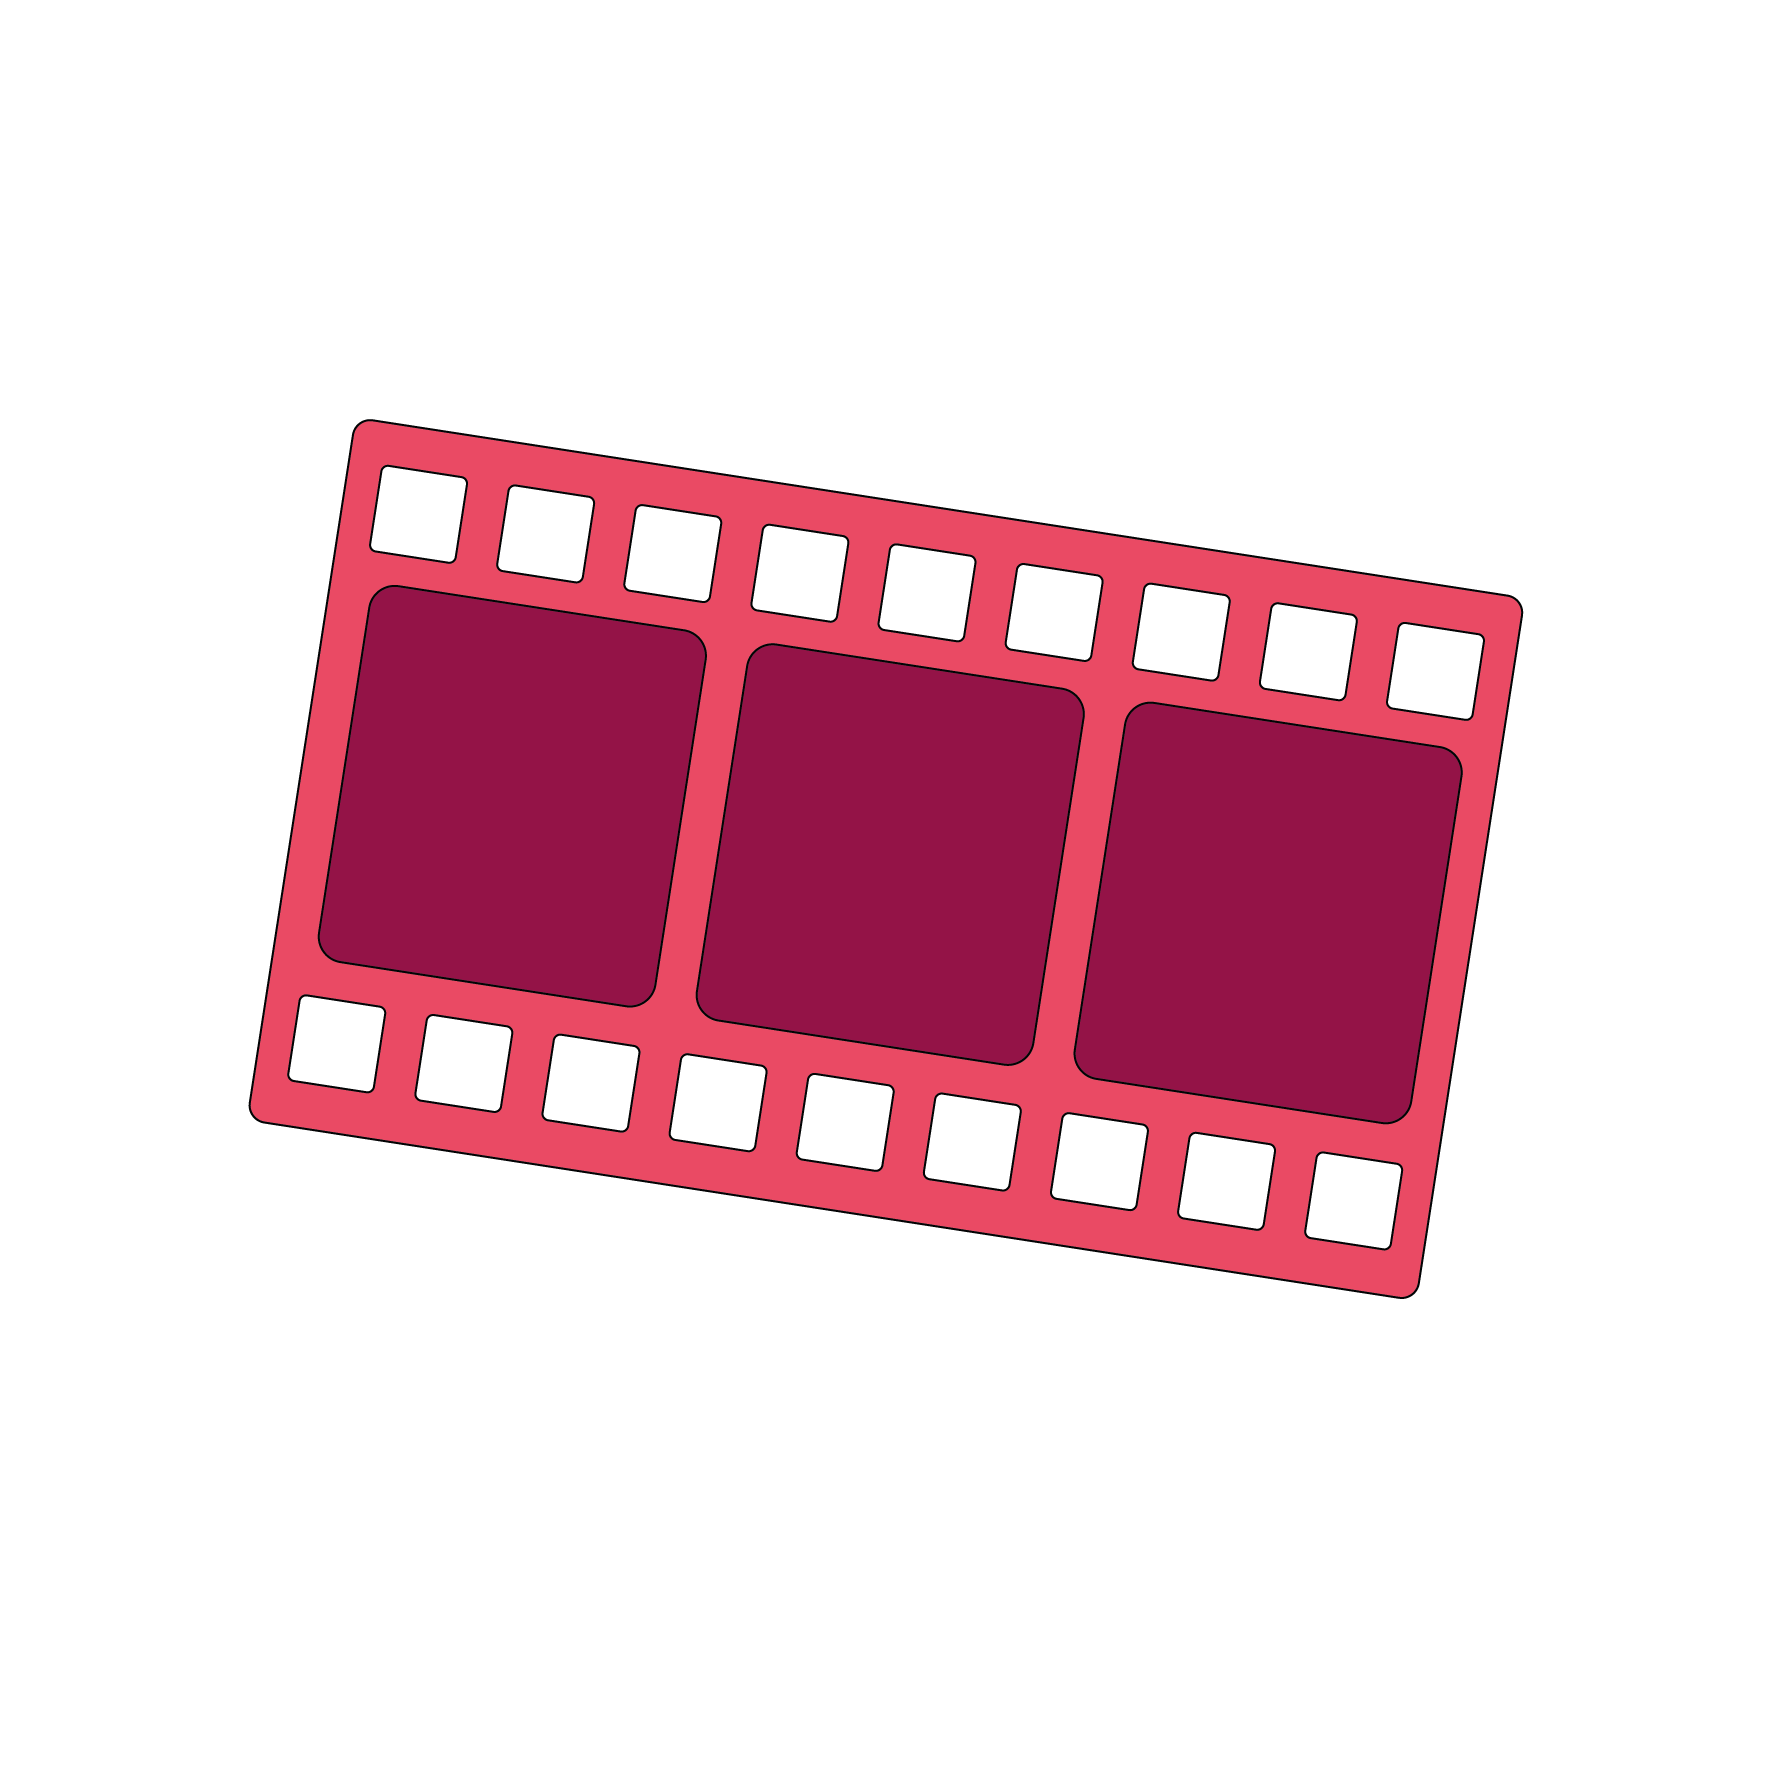 Icon depicting a strip of old negatives from a roll of film.